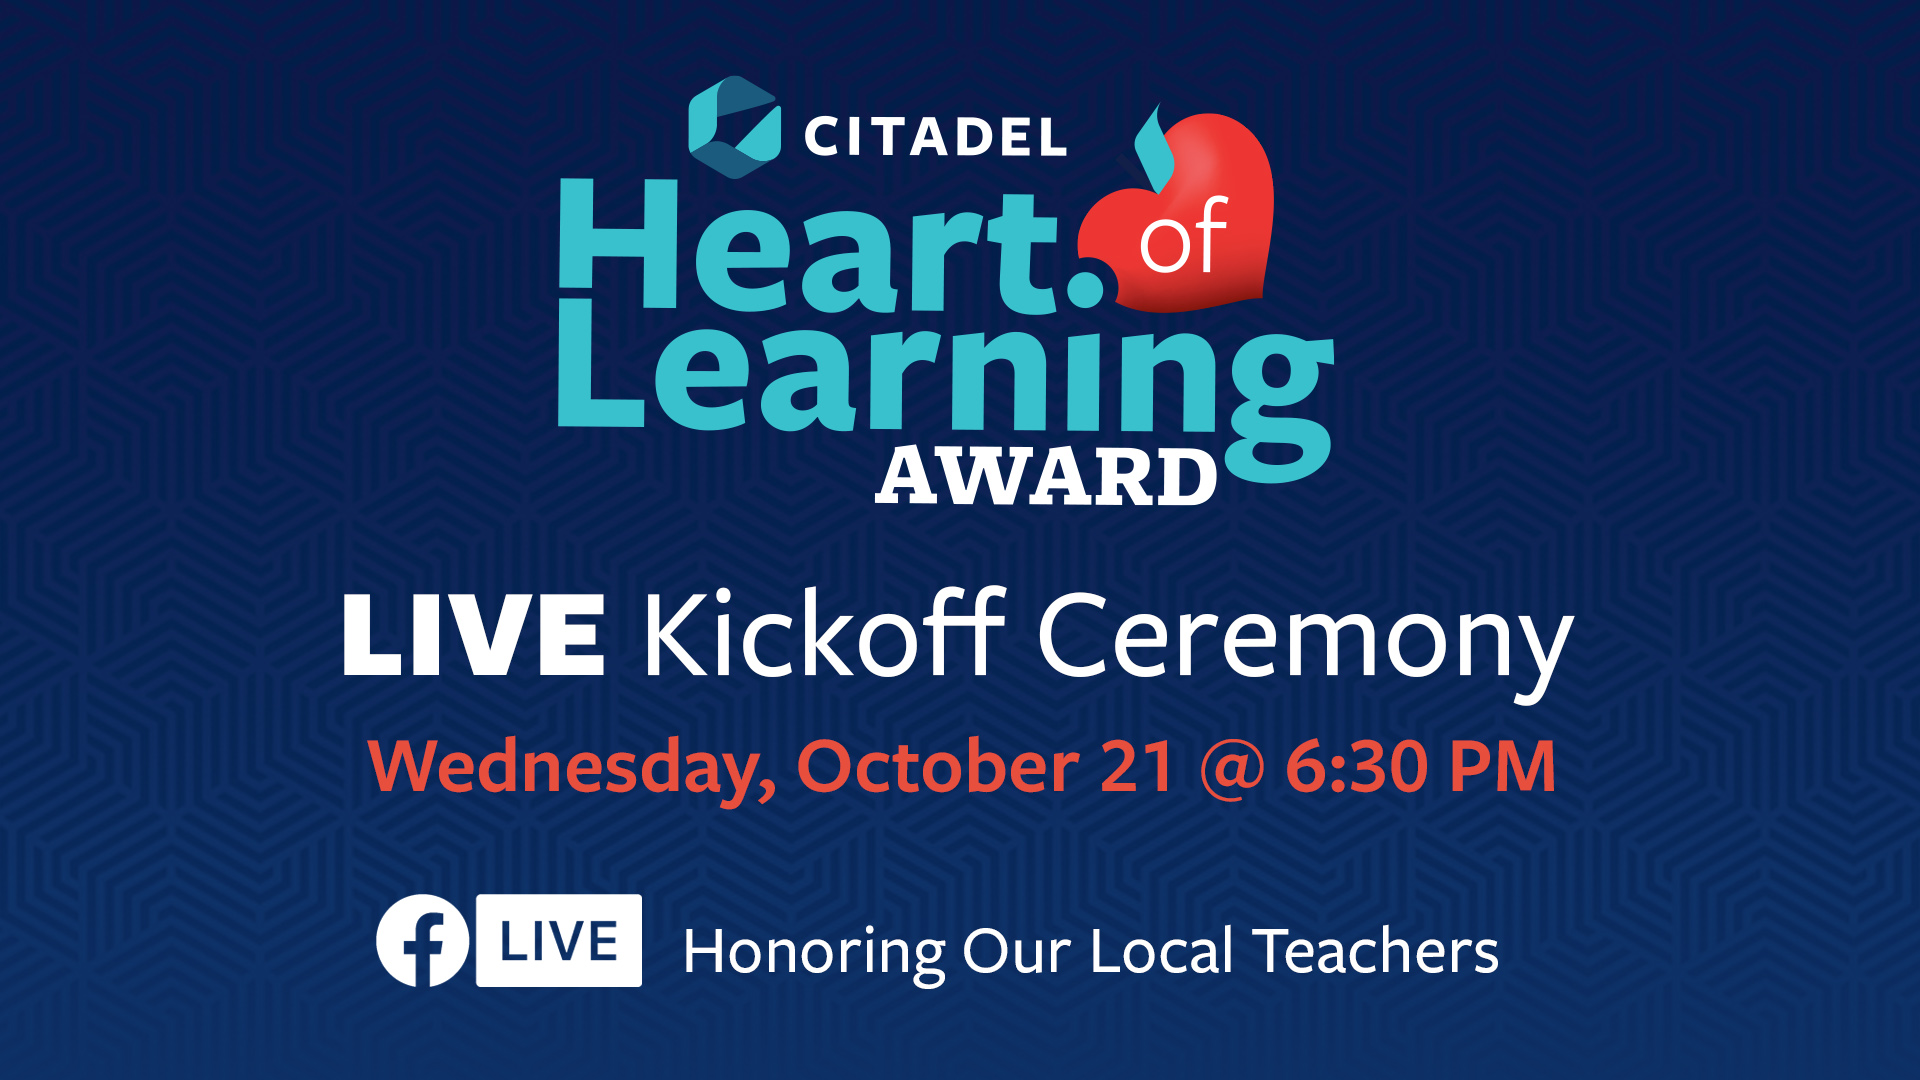 Citadel Credit Union Now Accepting Nominations for Its Heart of Learning Award Program